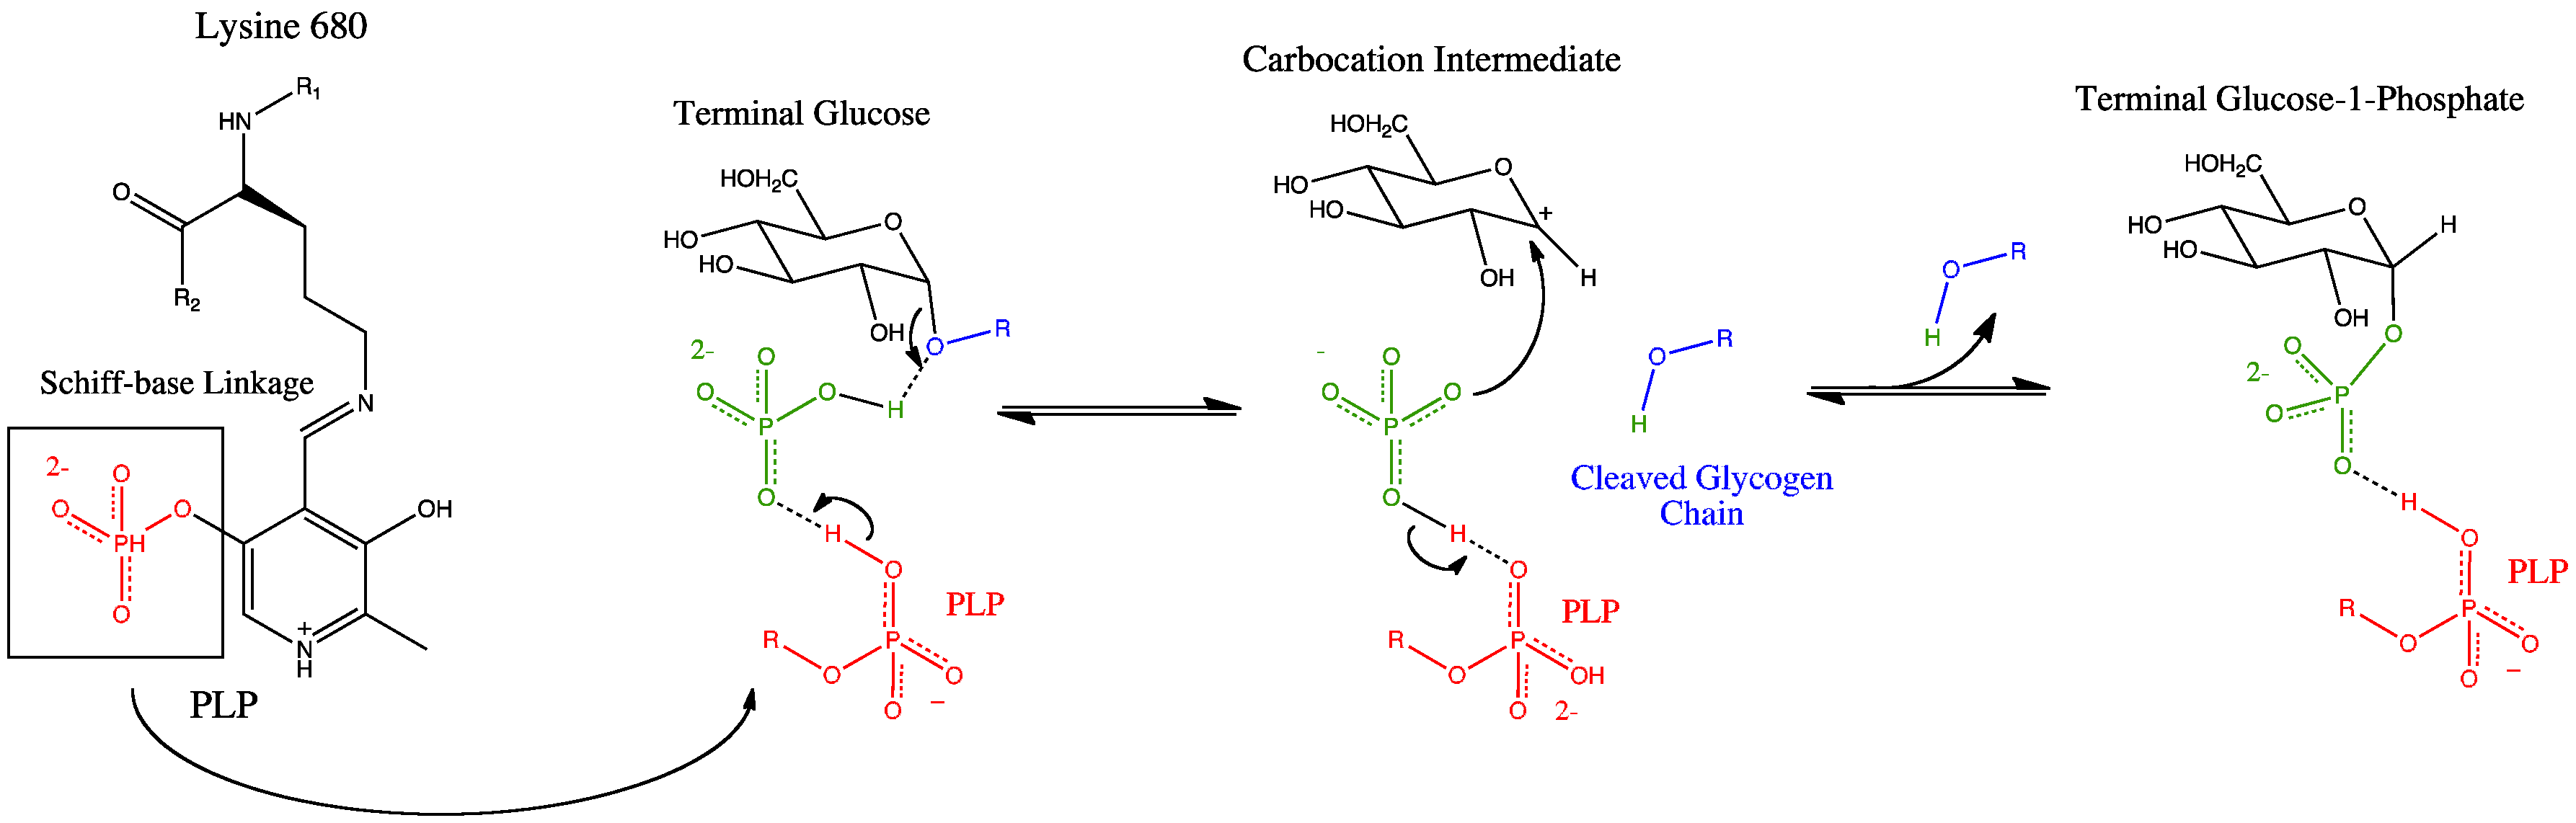 the specific substrate acted on by aldolase b during the breakdown of fructose Fructose-bisphosphate aldolase (ec 41213), often just aldolase, is an enzyme  catalyzing a  additionally, tyrosine residues are crucial to this mechanism in  acting as stabilizing hydrogen acceptors  the metabolism of free fructose in  liver exploits the ability of aldolase b to use fructose 1-phosphate as a substrate.